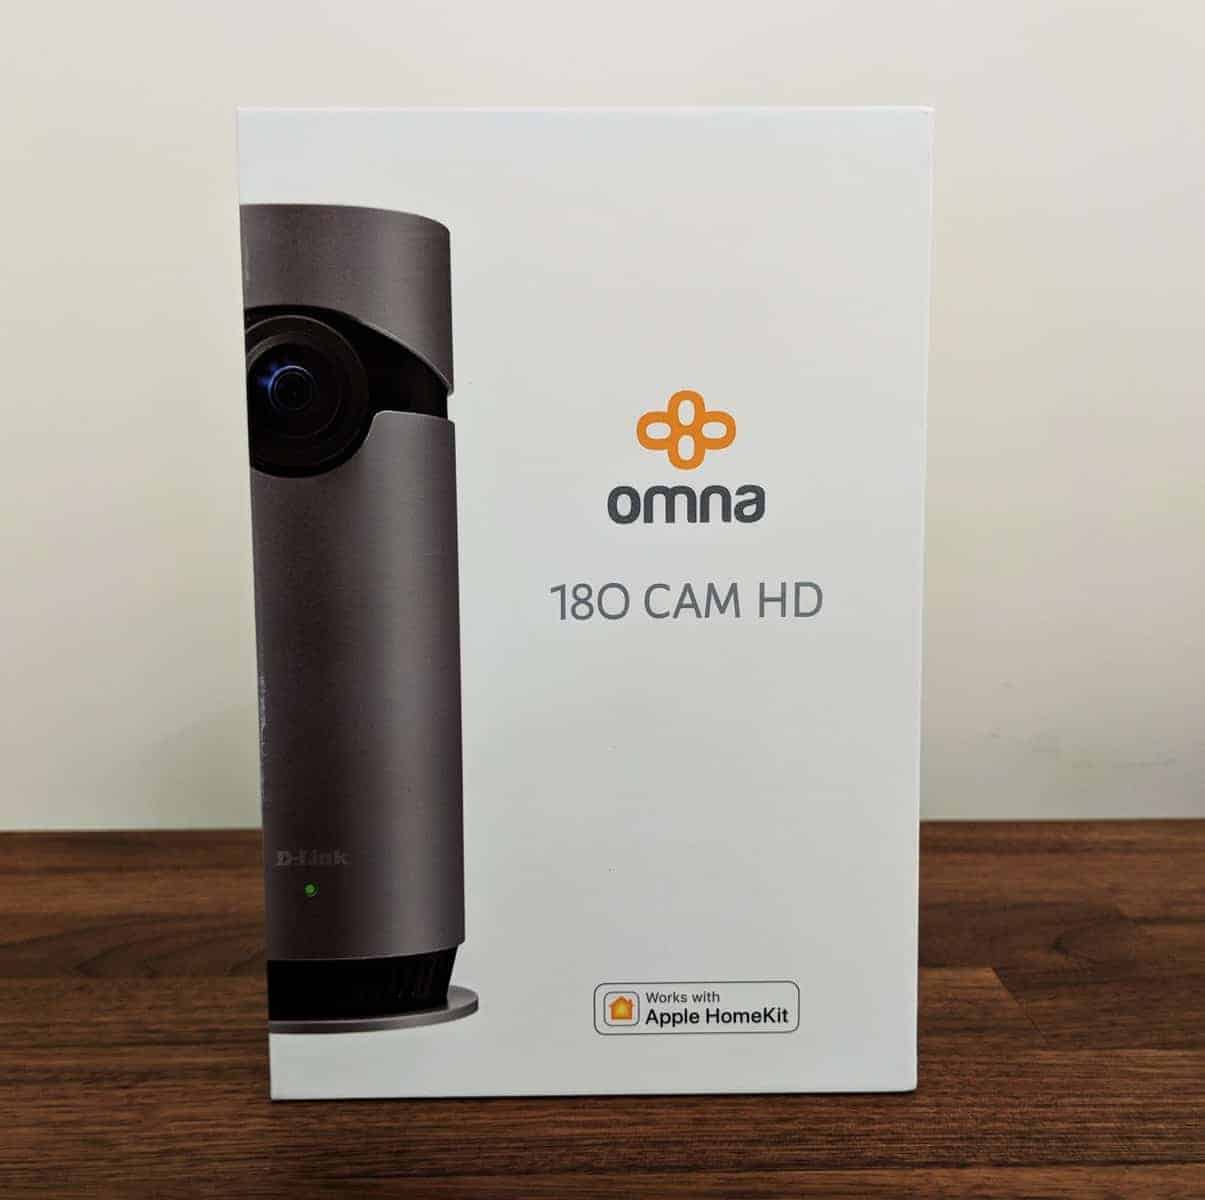 Dlink-omna-photos15 D-Link Full HD Omna 180 Degree Wi-Fi Camera Review